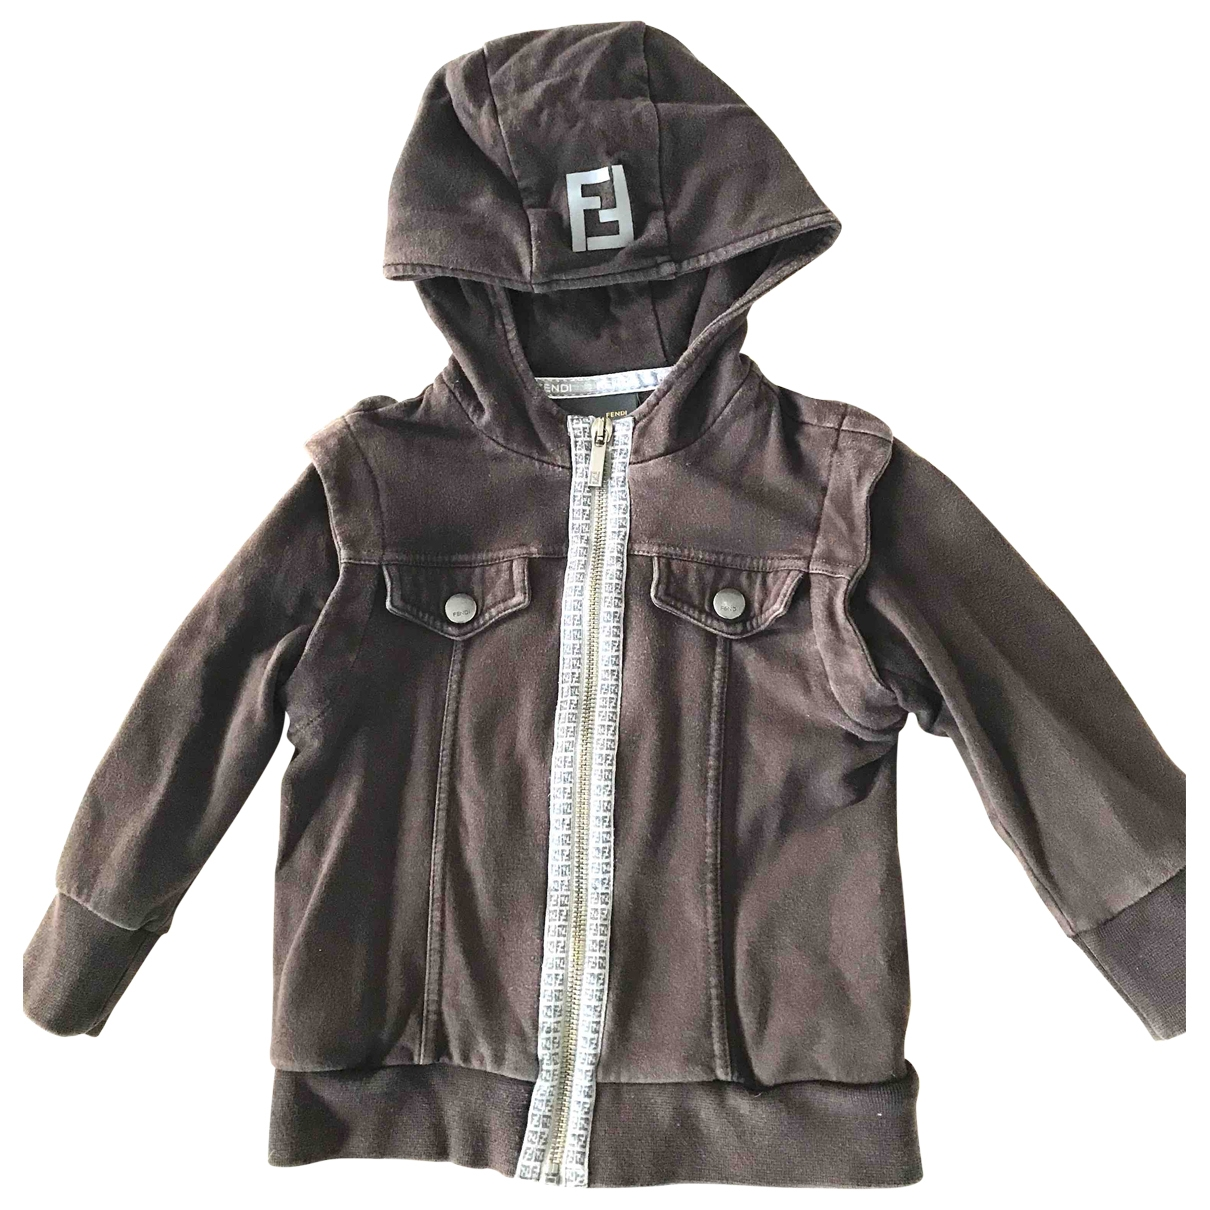 Fendi \N Brown Cotton Outfits for Kids 2 years - until 34 inches UK